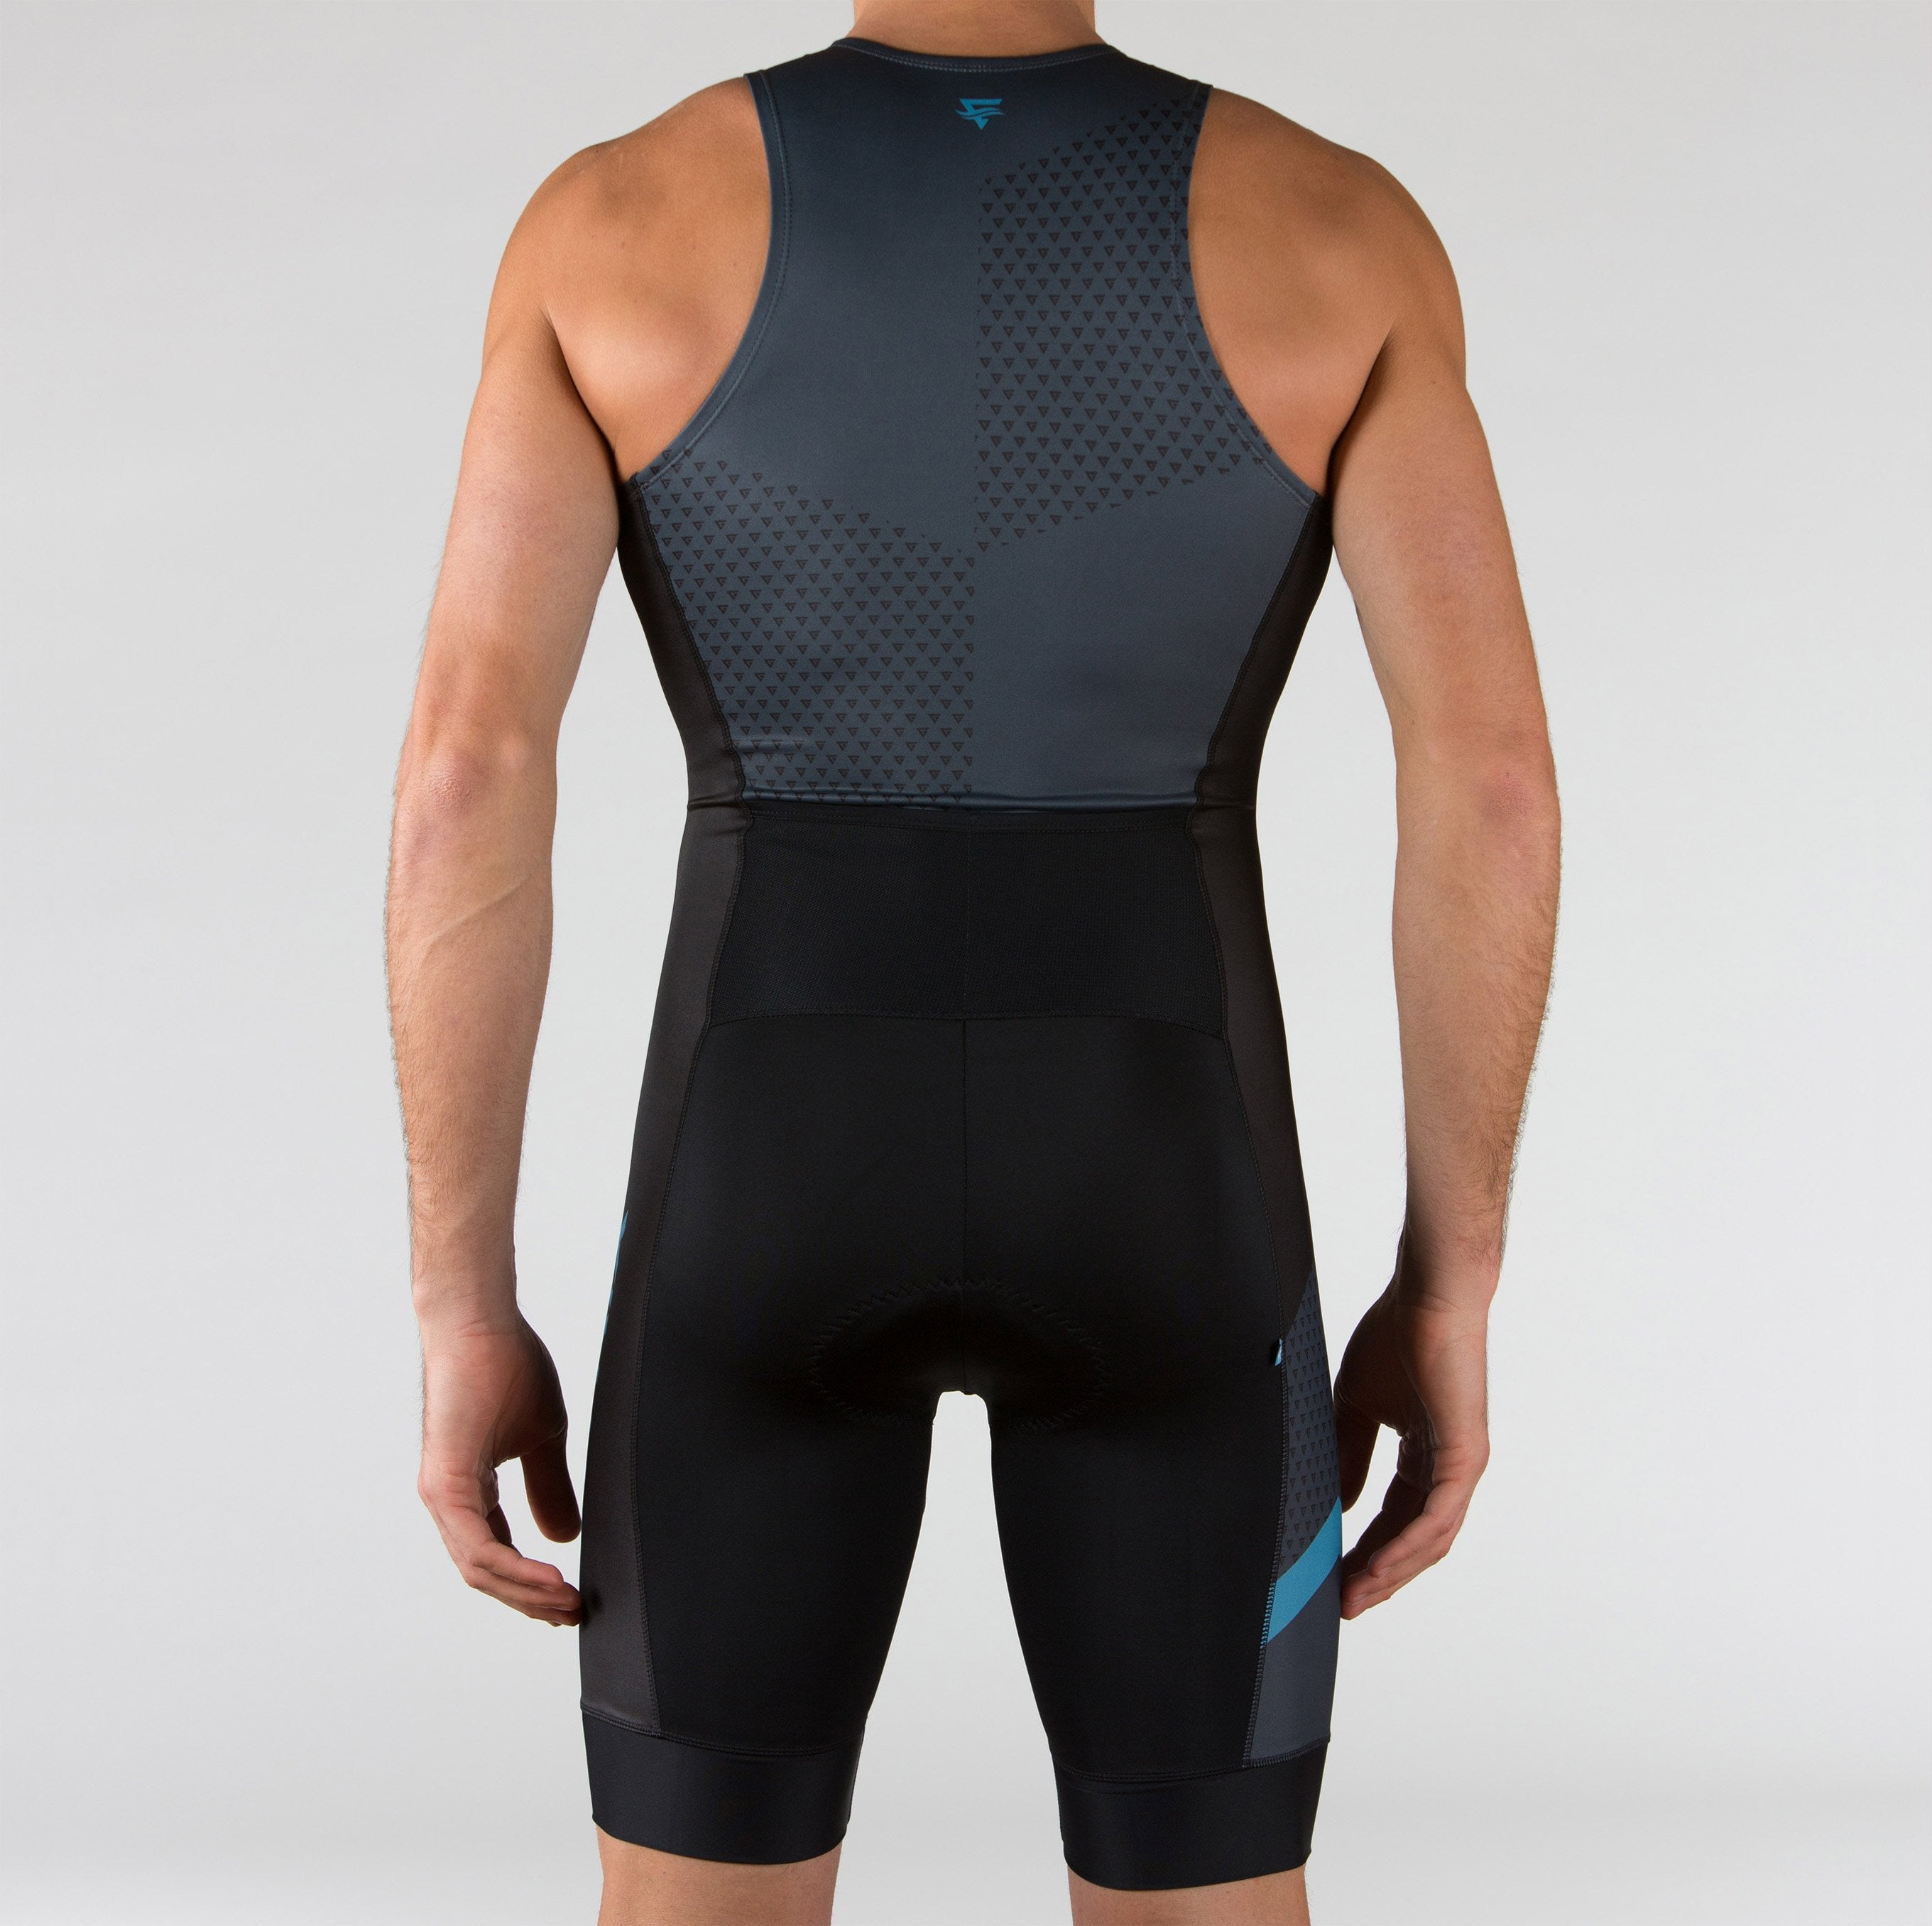 Venture Triathlon Suit - Sleeveless - ENTRIX